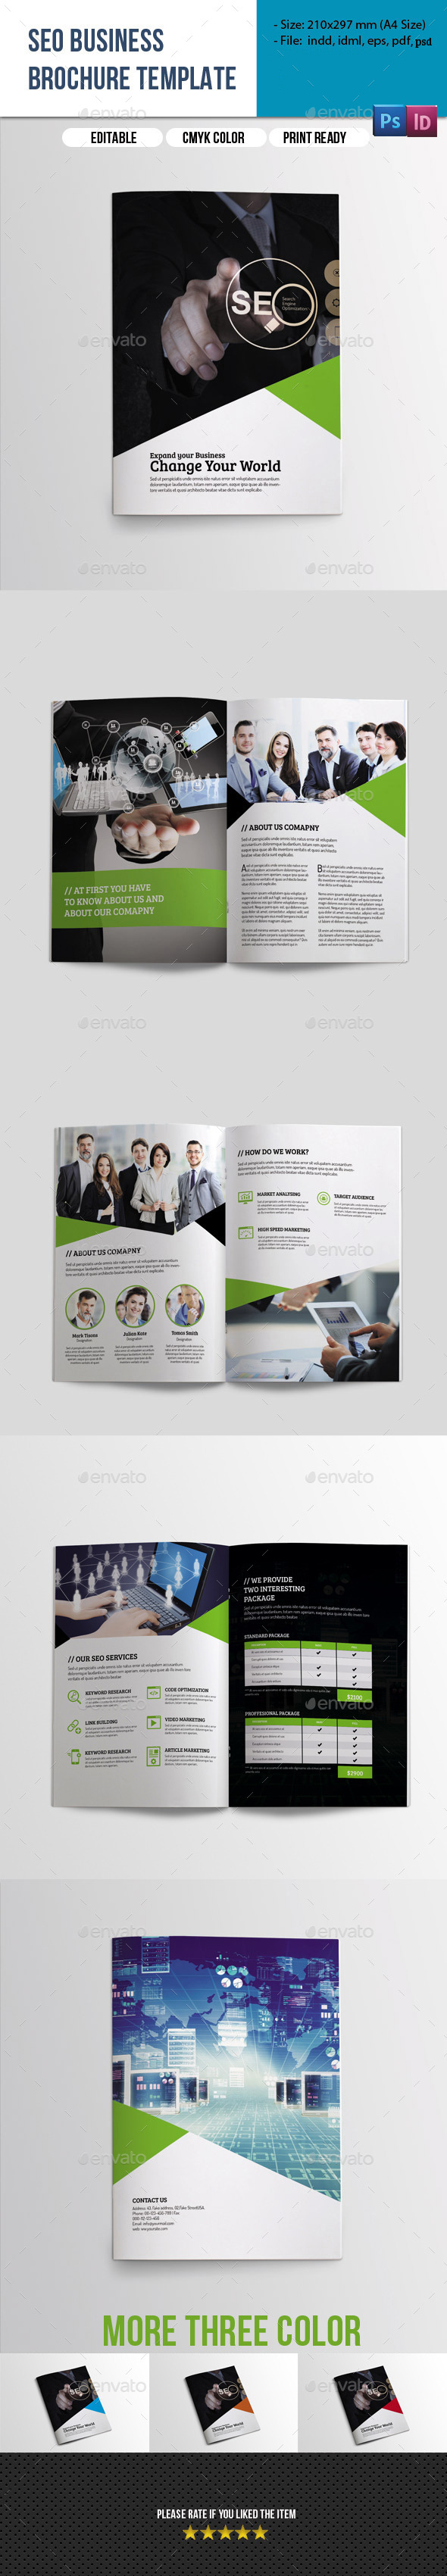 8 Pages SEO Business Brochure - Catalogs Brochures